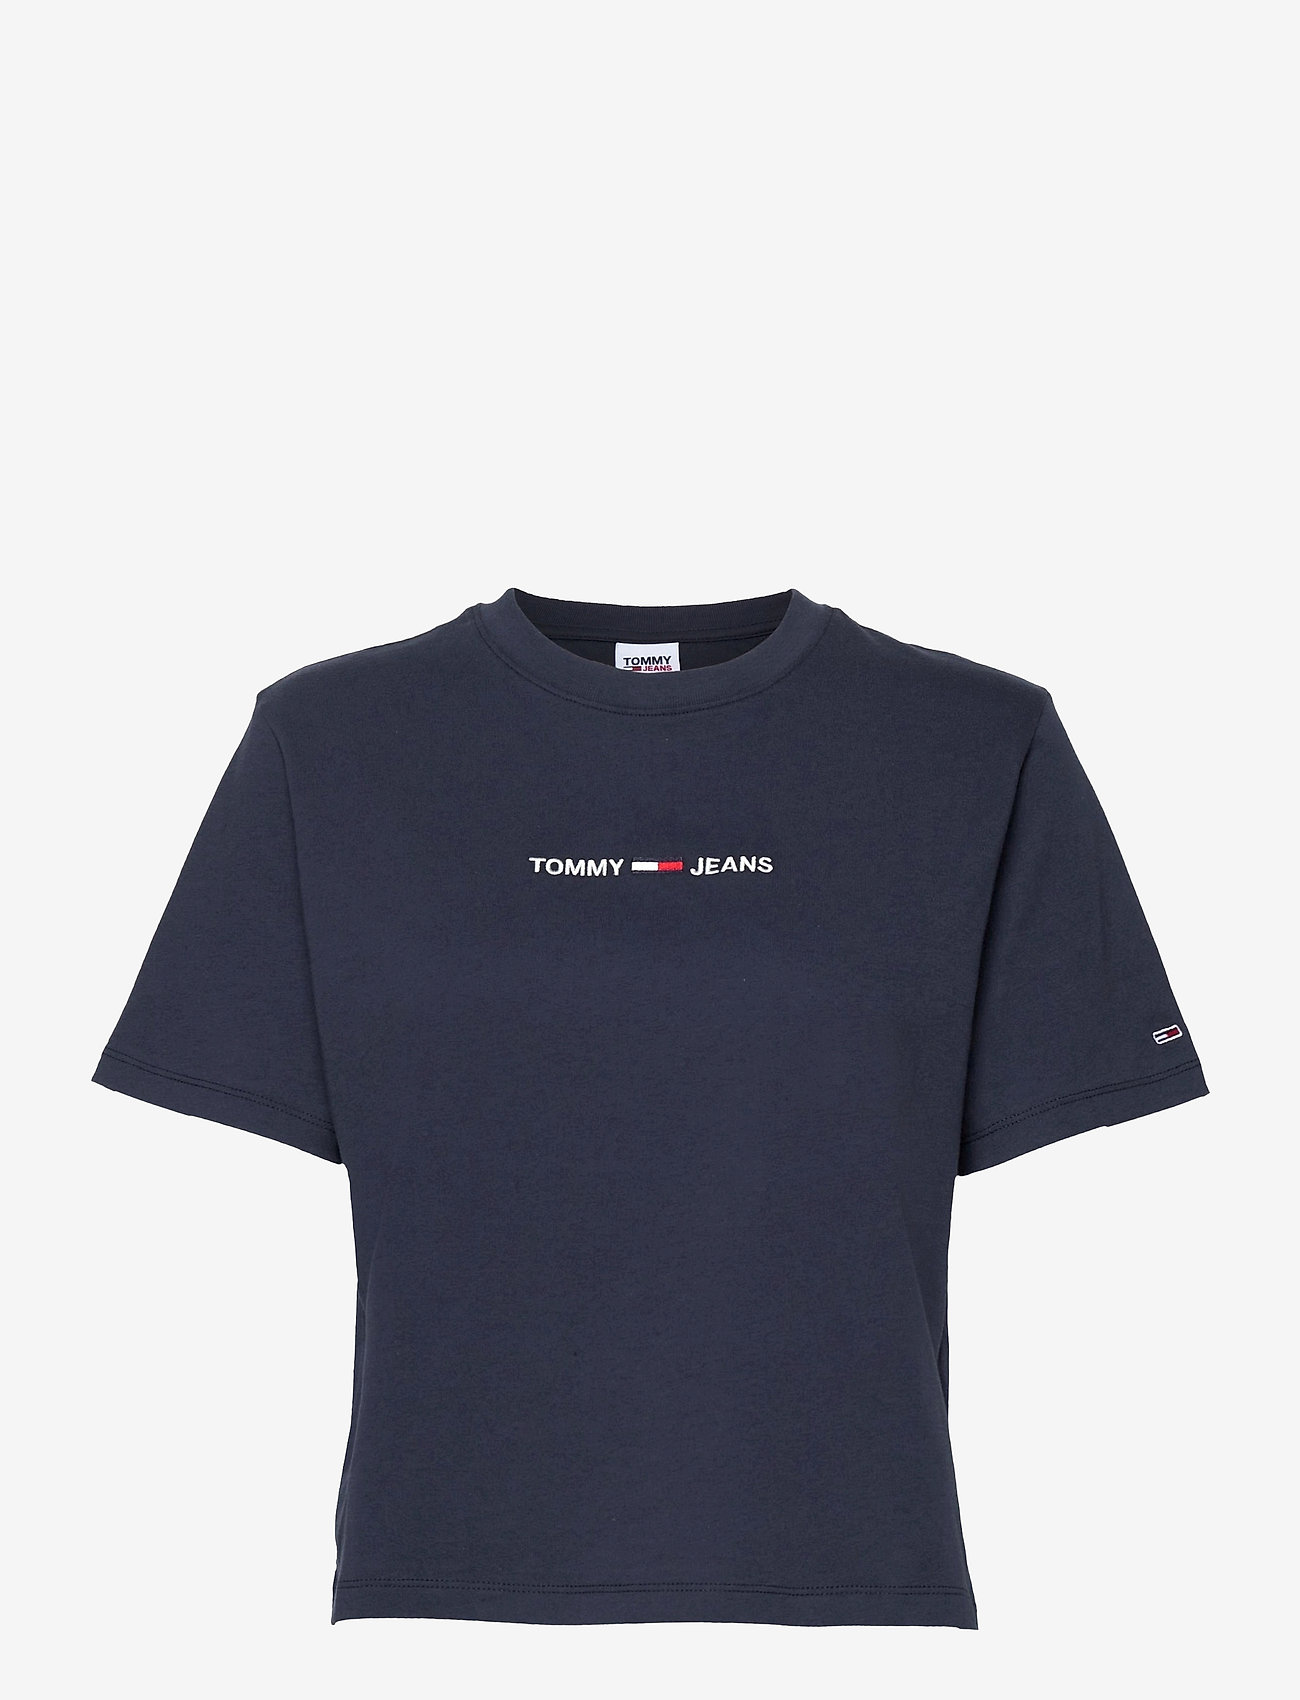 Tommy Jeans - TJW BXY CROP LINEAR LOGO TEE - crop tops - twilight navy - 0